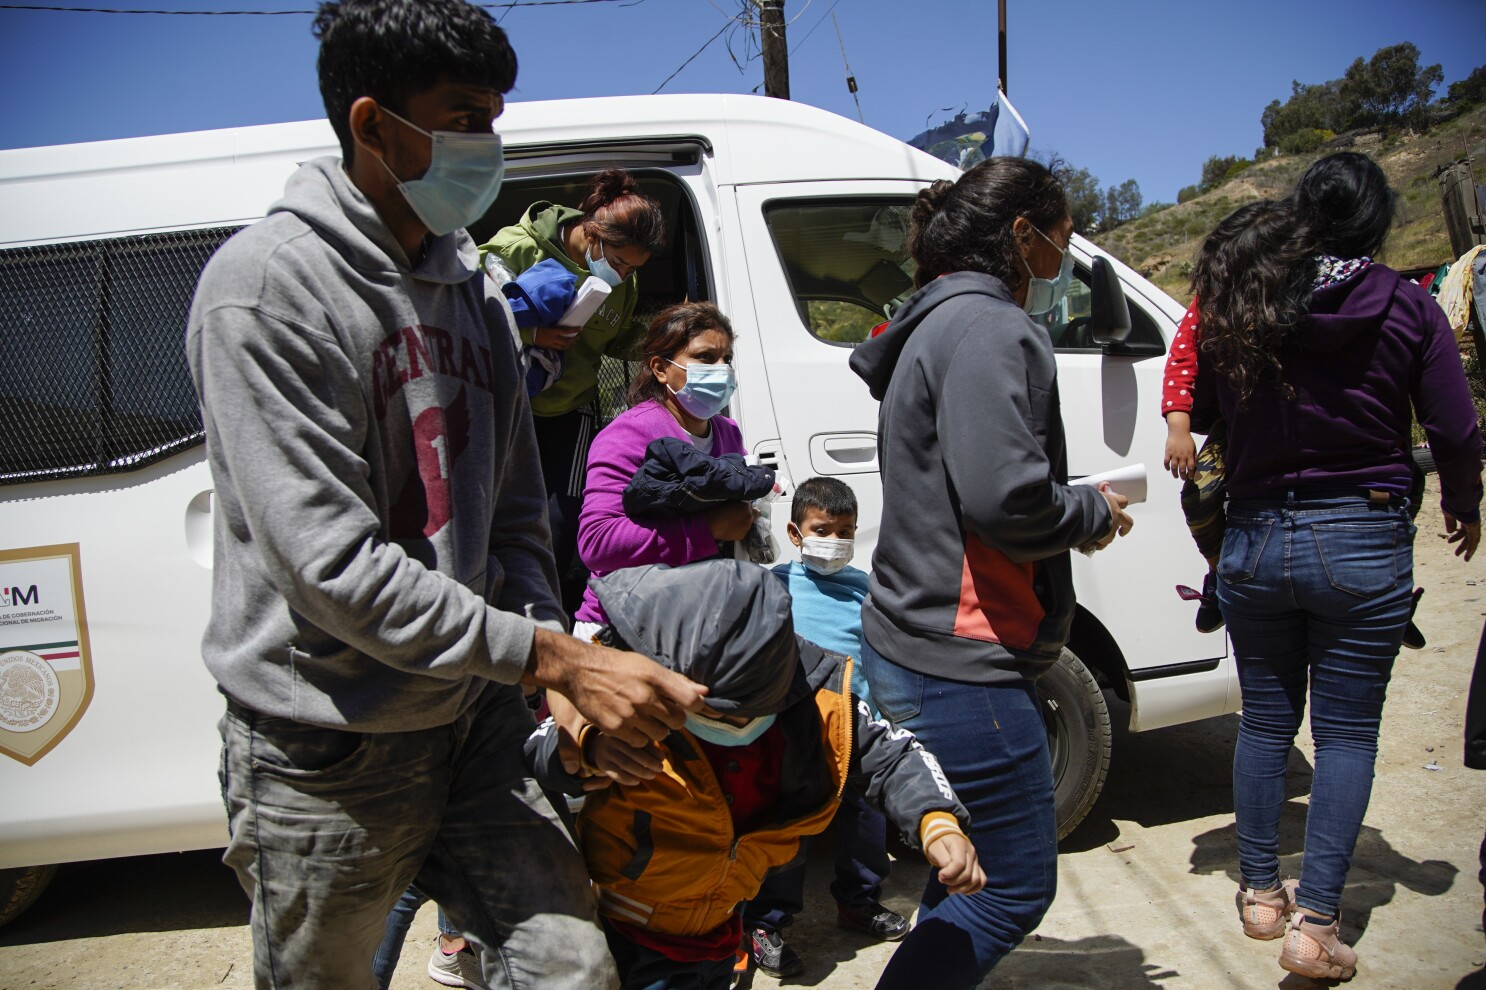 Biden expelling asylum-seeking families with young children to Tijuana  after flights from Texas - The San Diego Union-Tribune